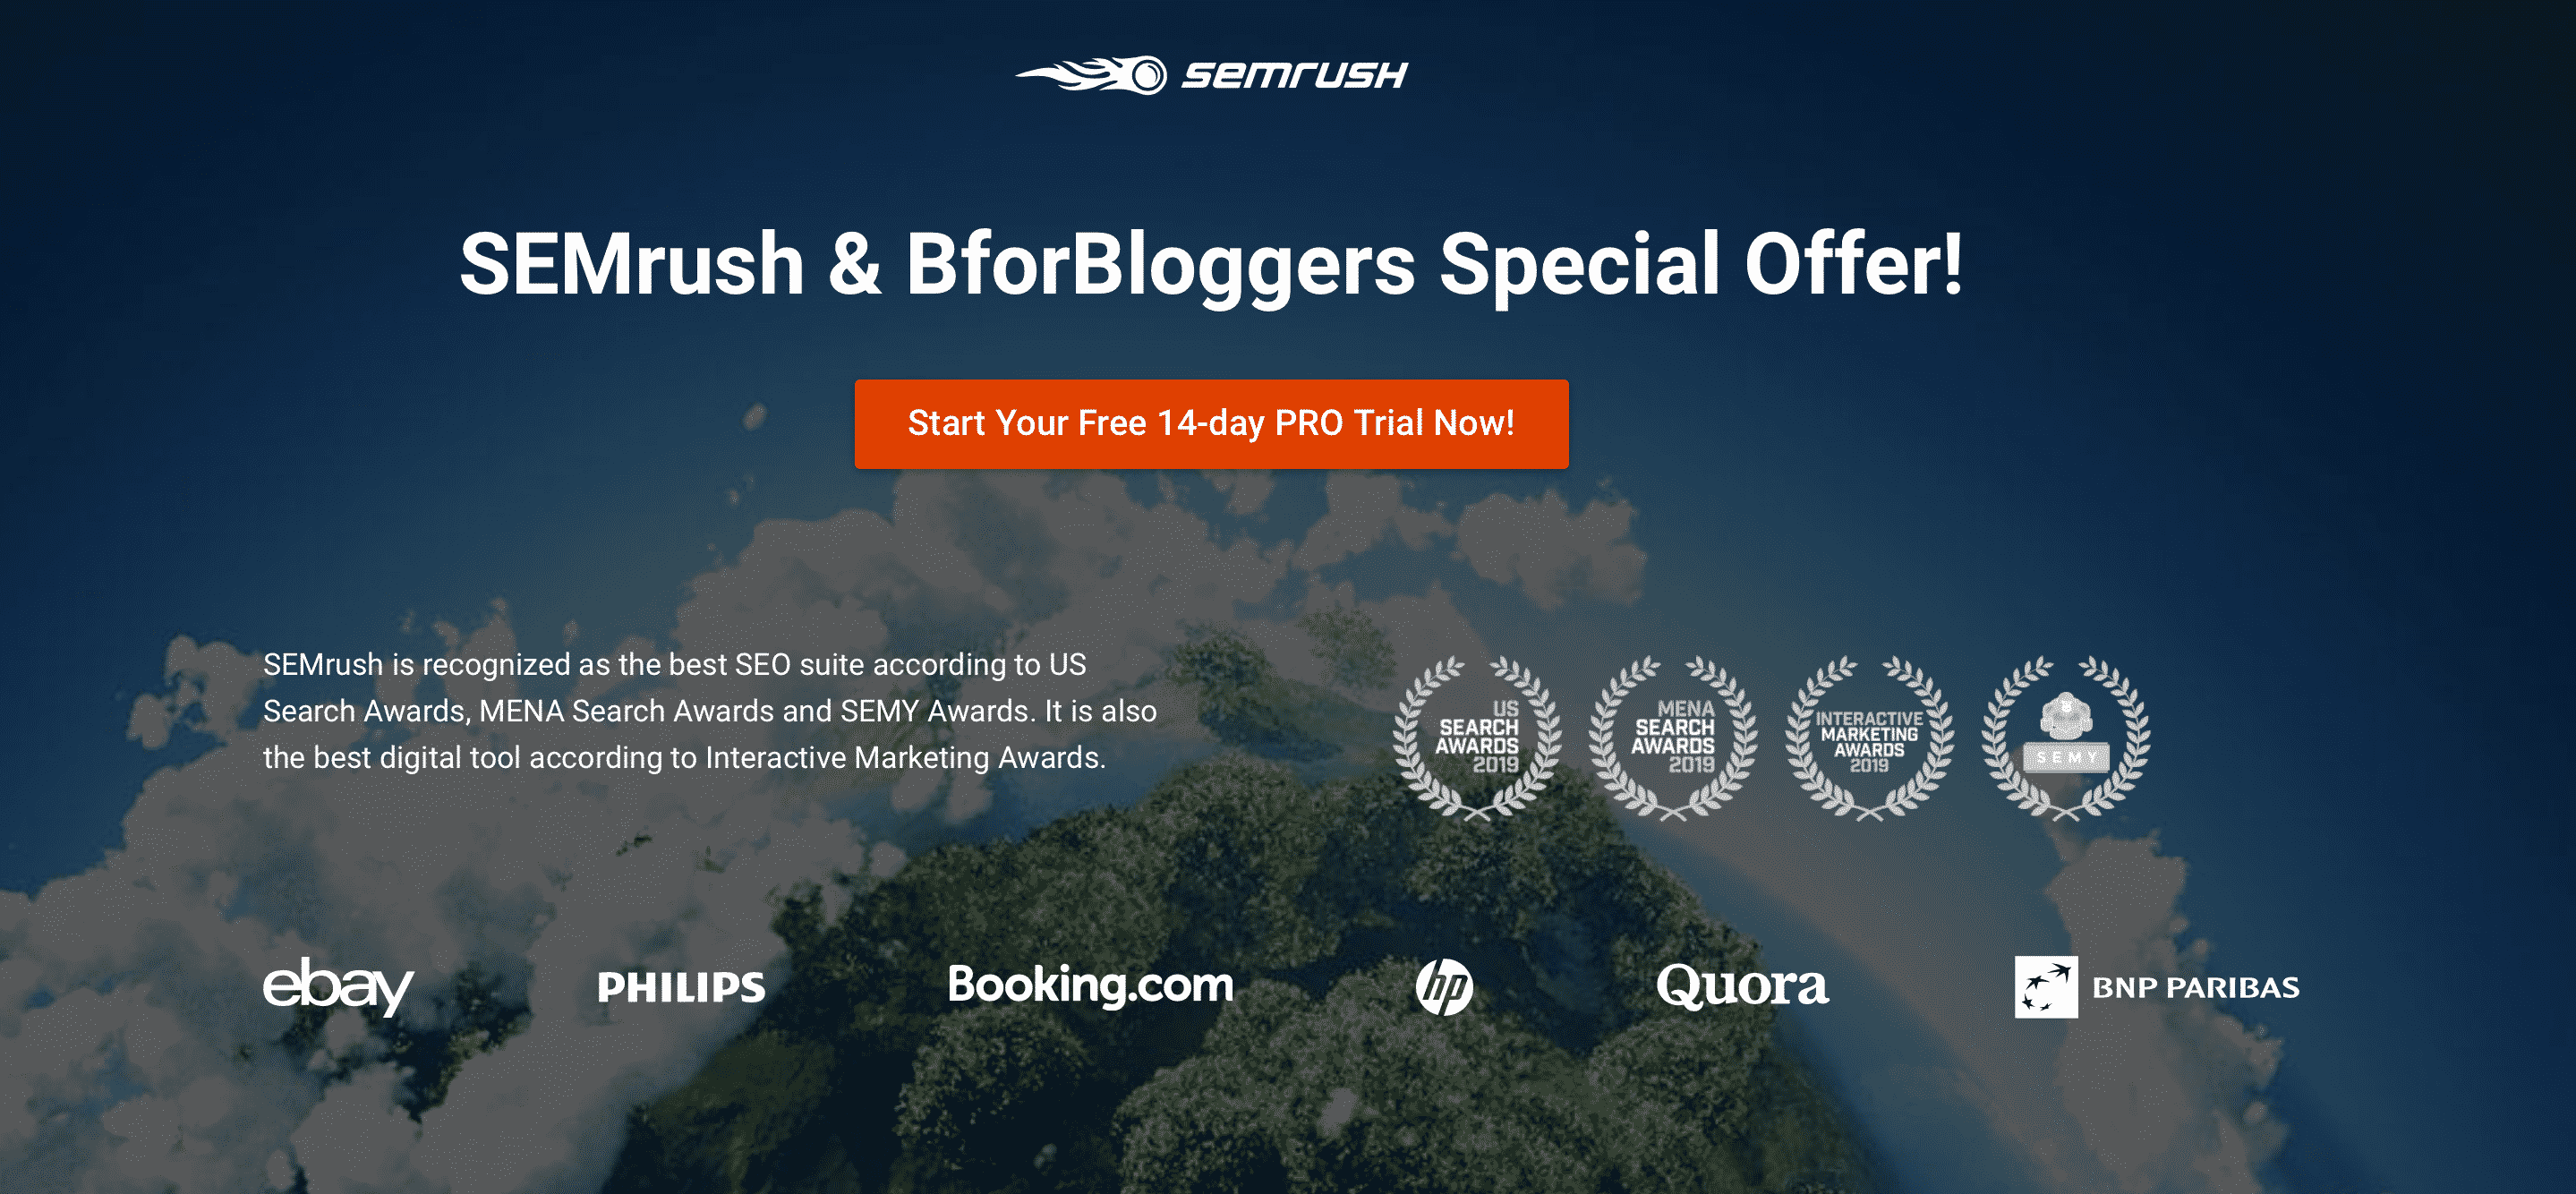 SEMrush-and-BforBloggers-offer-for-pro-trial